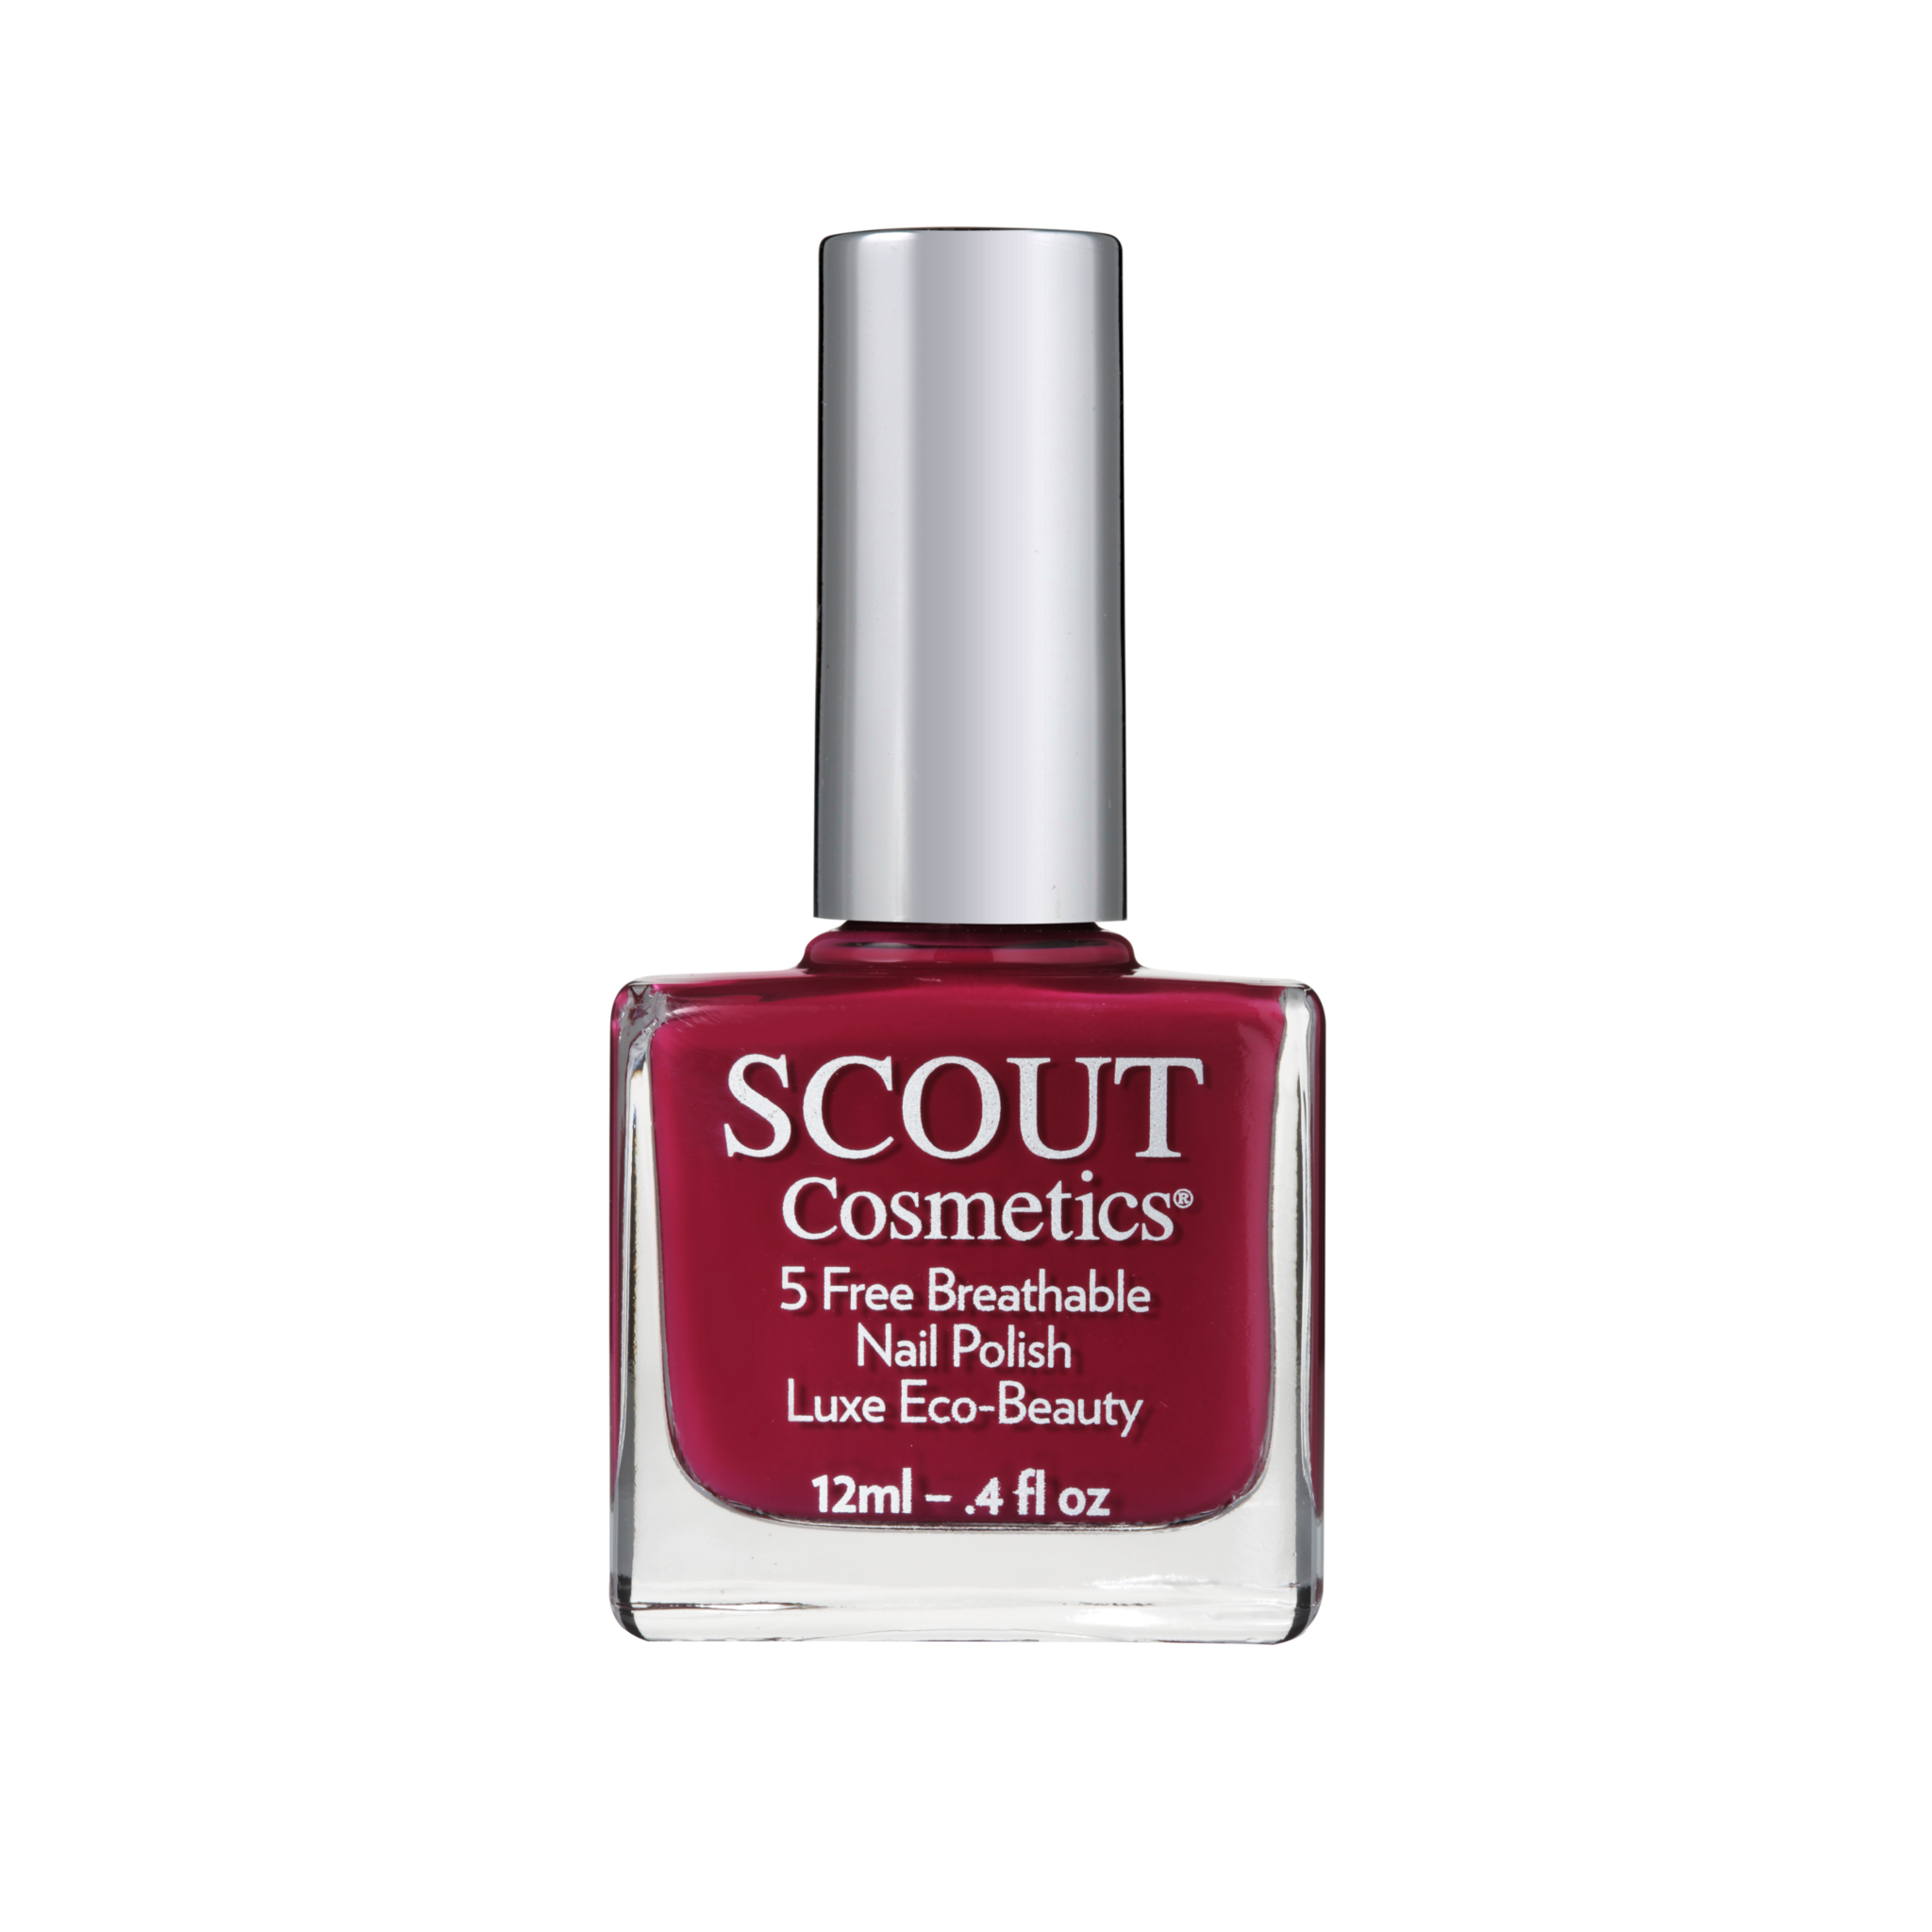 SCOUT Cosmetics Nail Polish - Spice Up Your Life